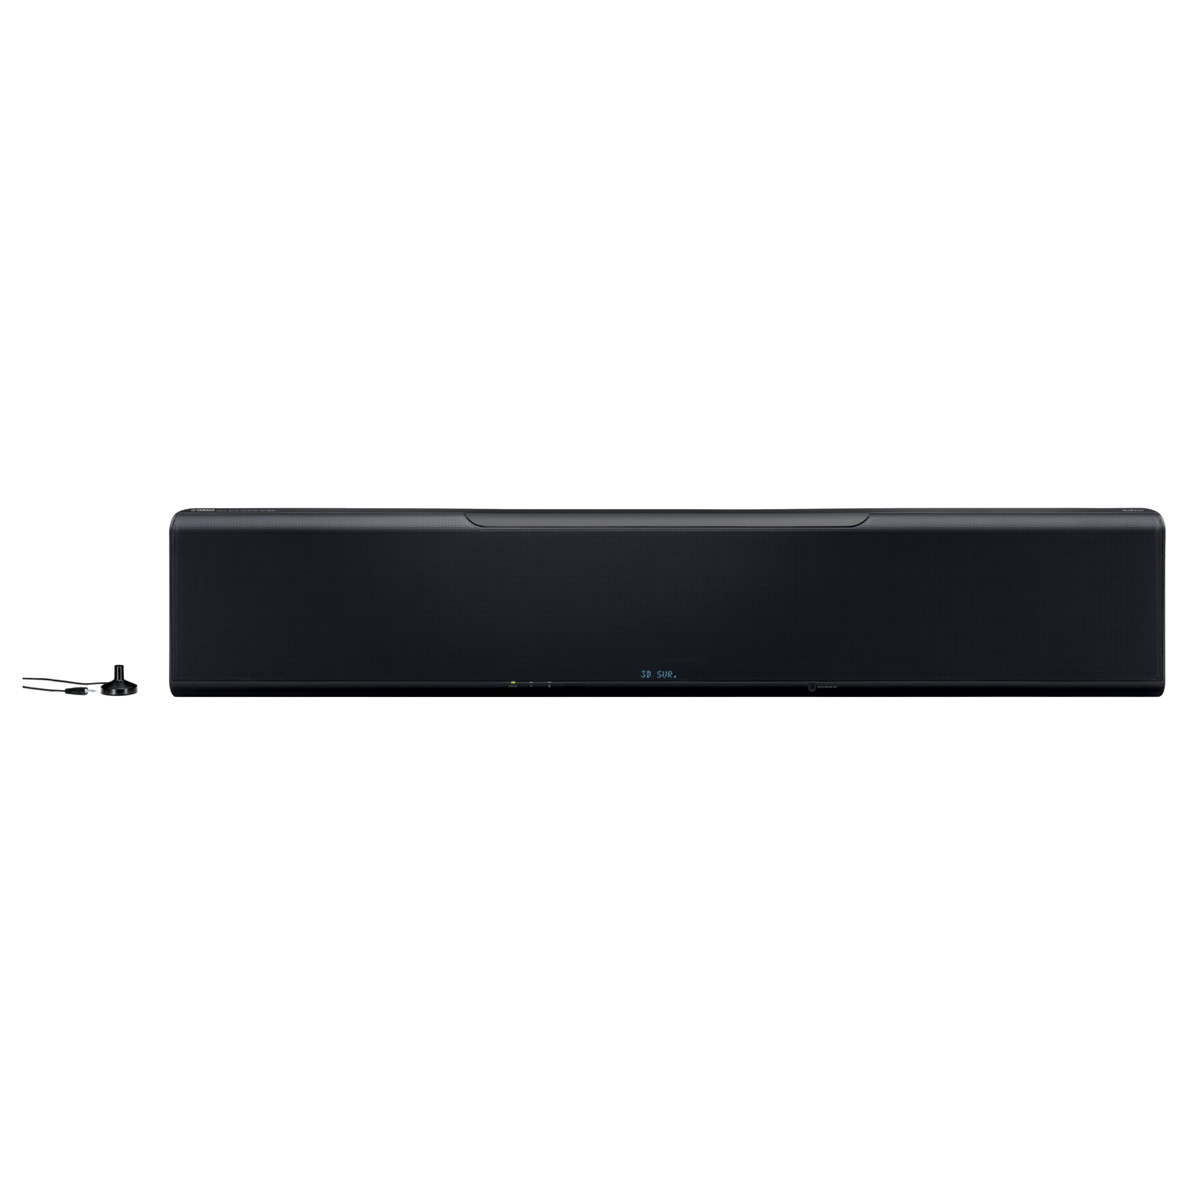 Yamaha Ysp 5600 Musiccast Sound Bar With Dolby Atmos Dts X